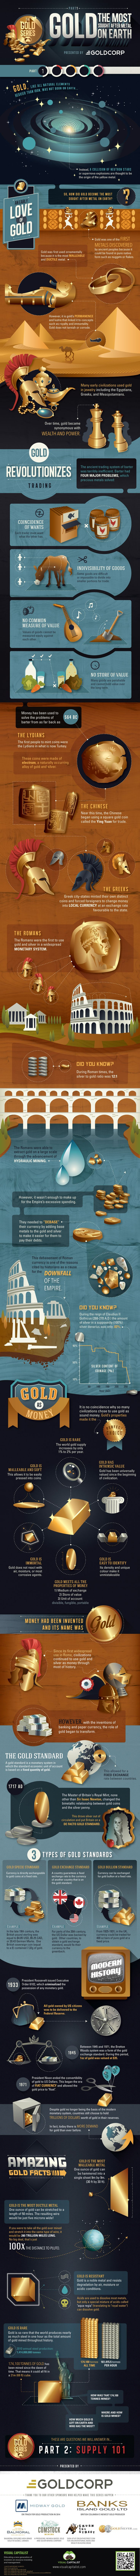 The Gold Series: The Most Sought After Metal on Earth (Part 1) | Visual Capitalist